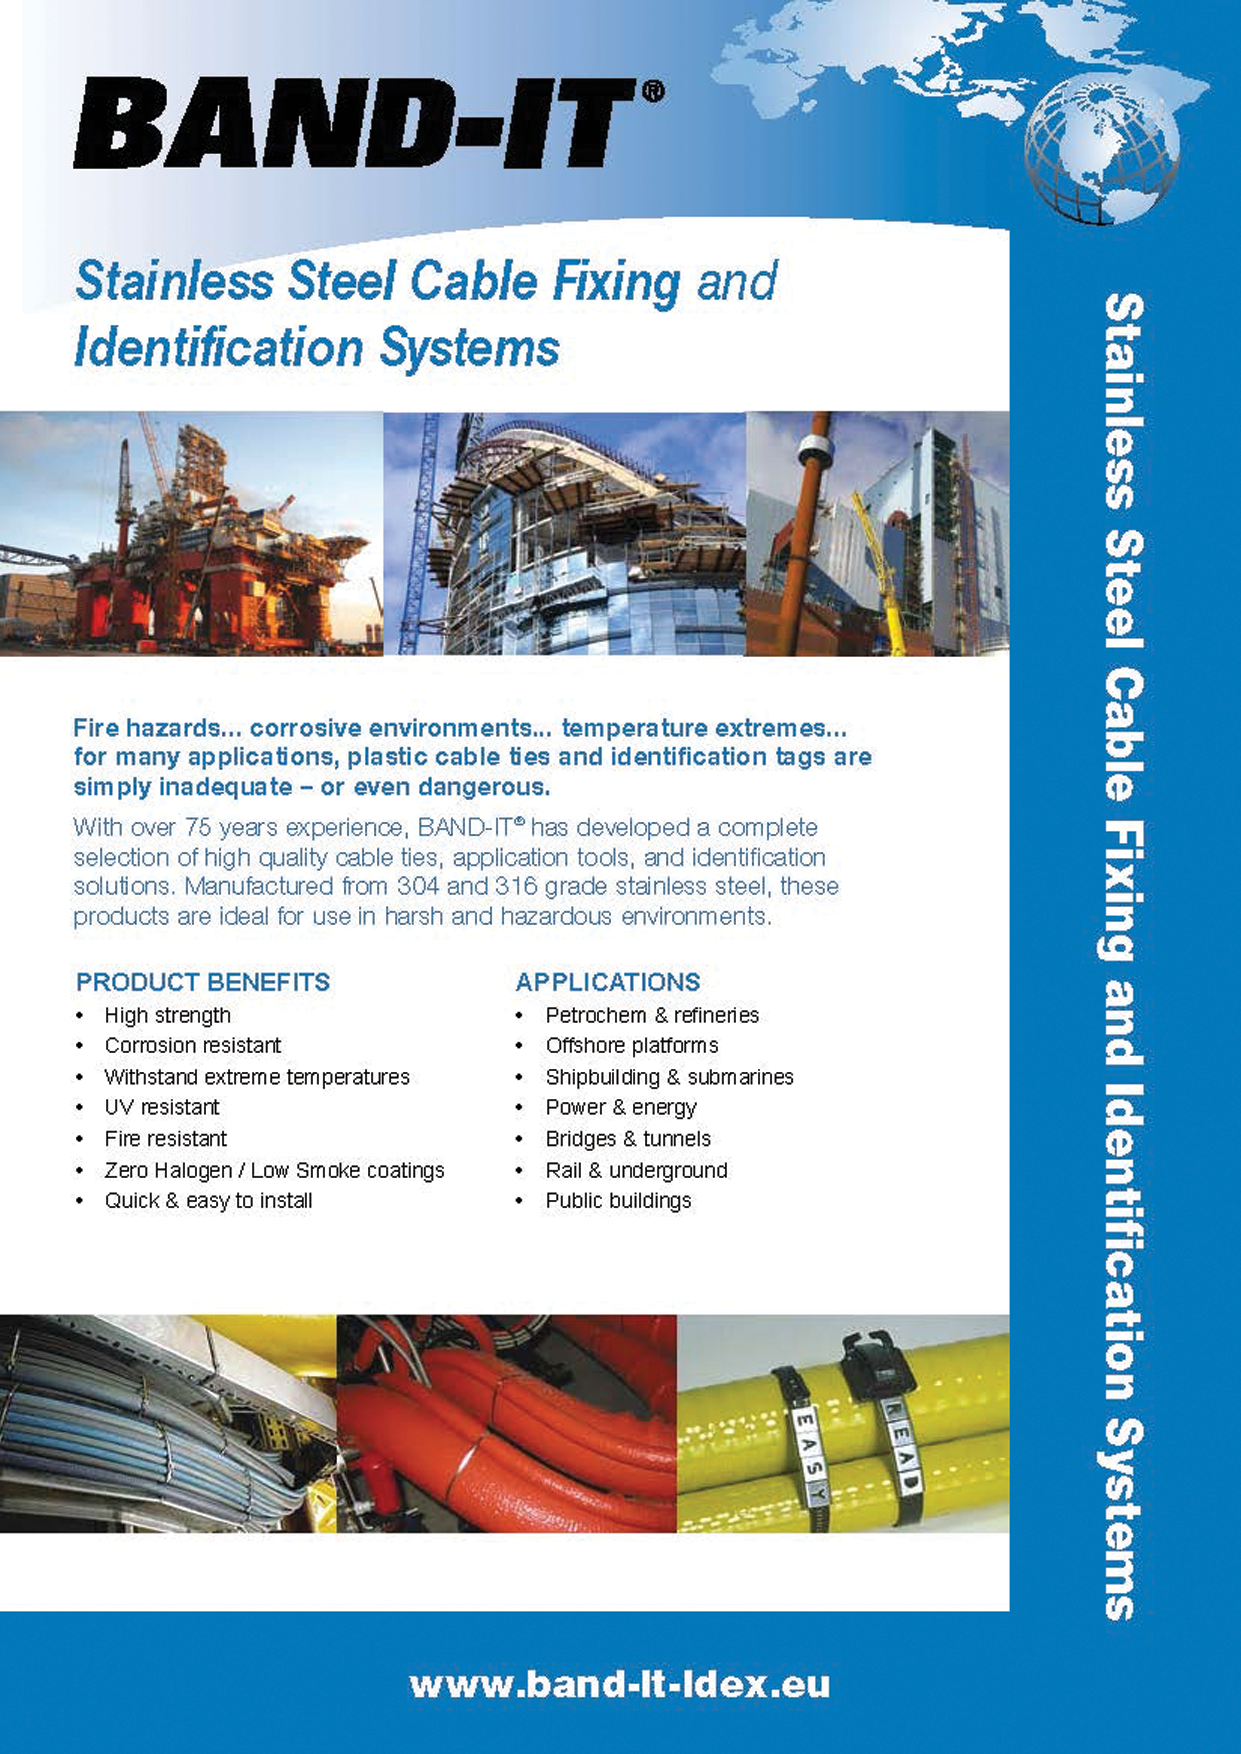 Stainless Steel Cable Fixing and Identification Systems